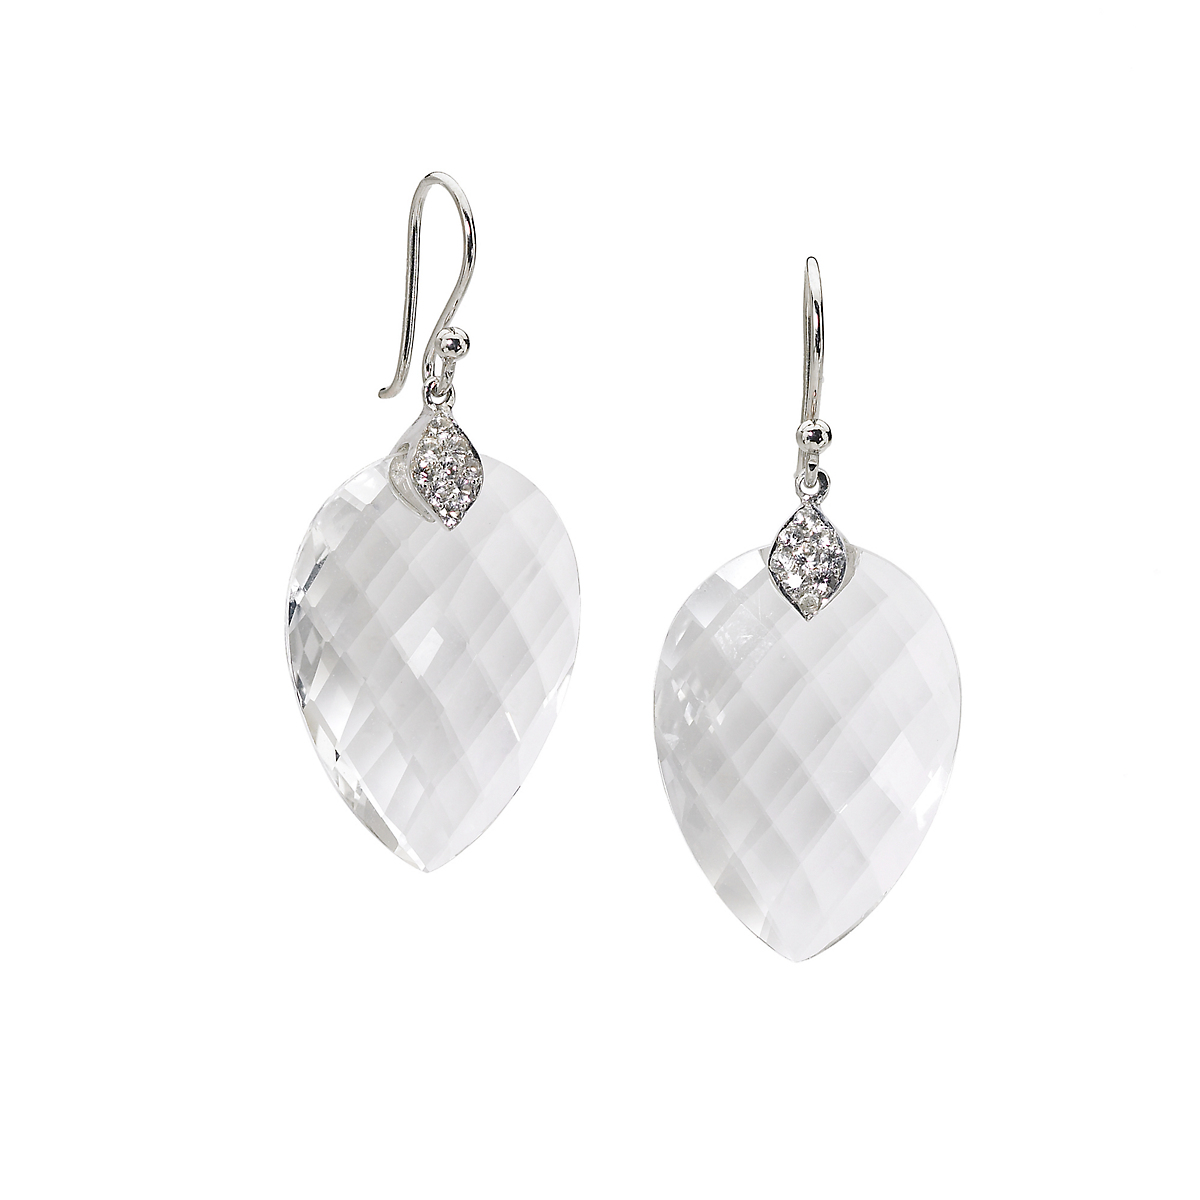 Elizabeth Showers White Quartz & Sapphire Susanna Drop Earrings